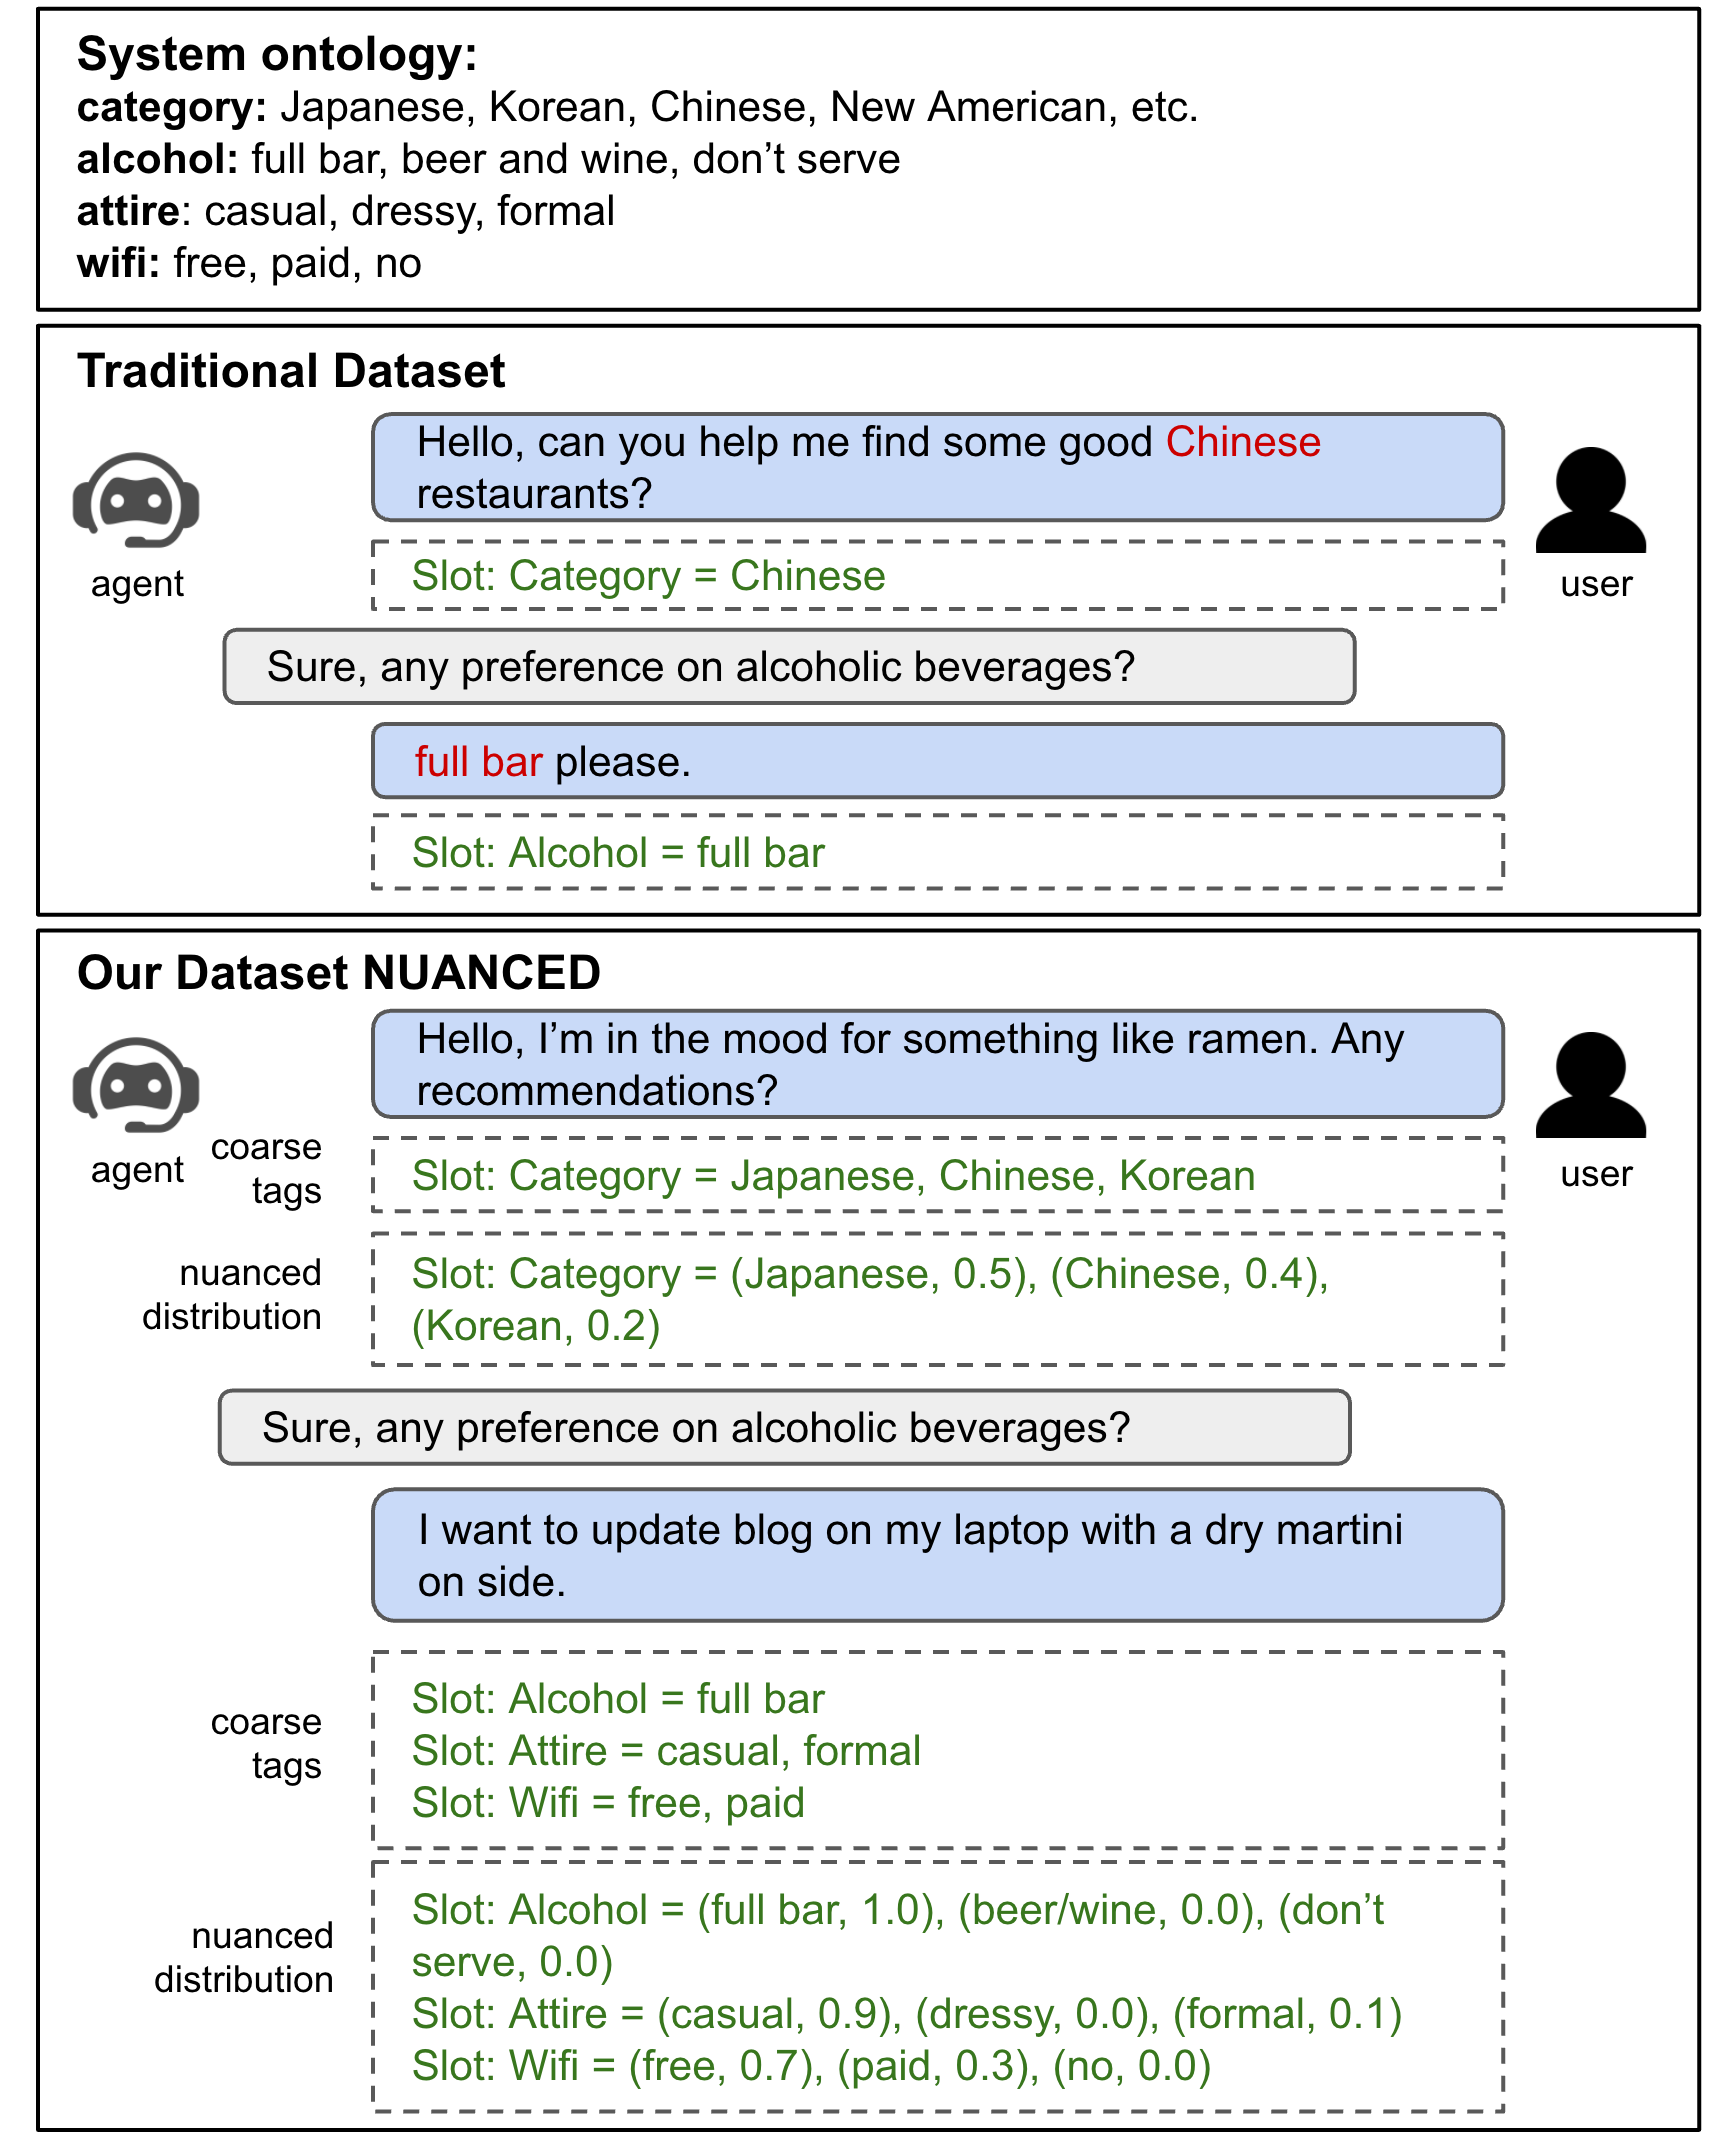 Examples of traditional dataset and NUANCED